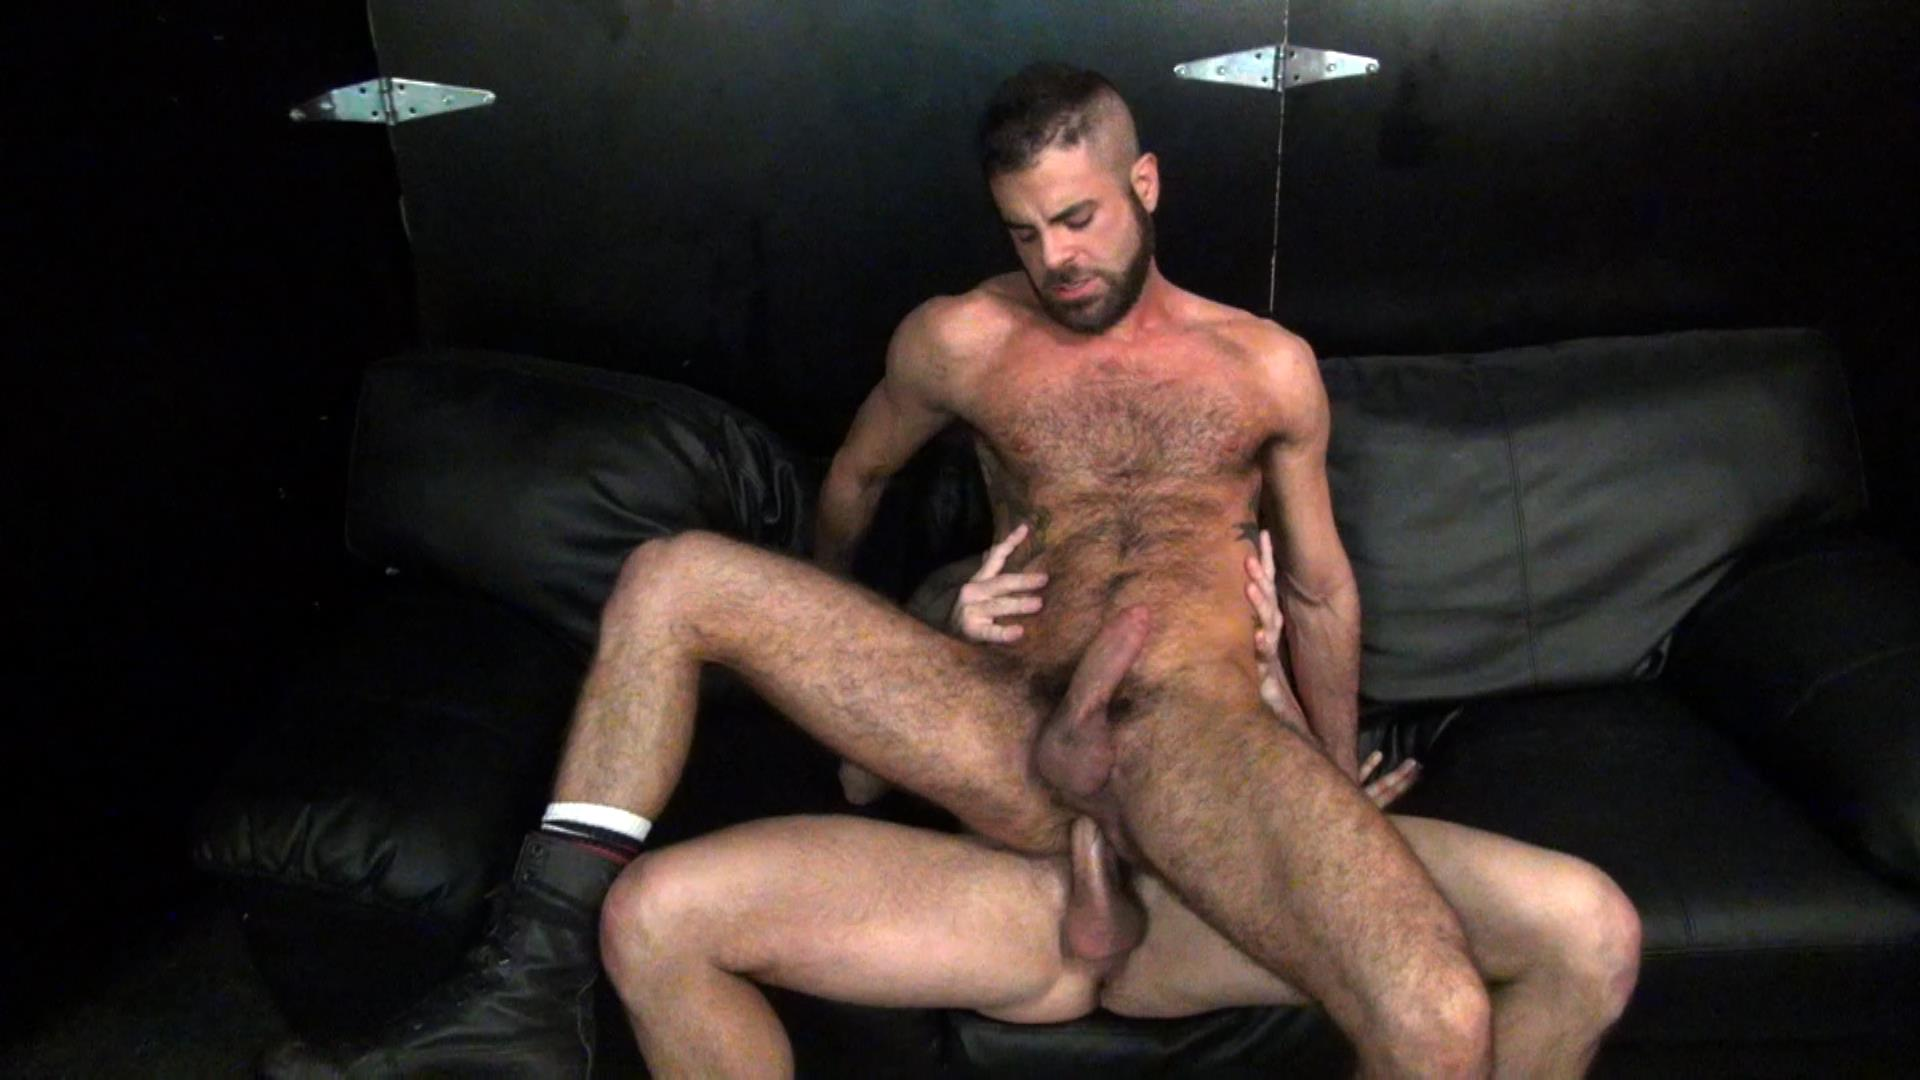 Raw-Fuck-Club-Max-Cameron-and-Markus-Isaacs-Hairy-Muscle-Bareback-Breeding-BBBH-Amateur-Gay-Porn-3 Max Cameron and Markus Isaacs Breeding Each Other's Hairy Ass